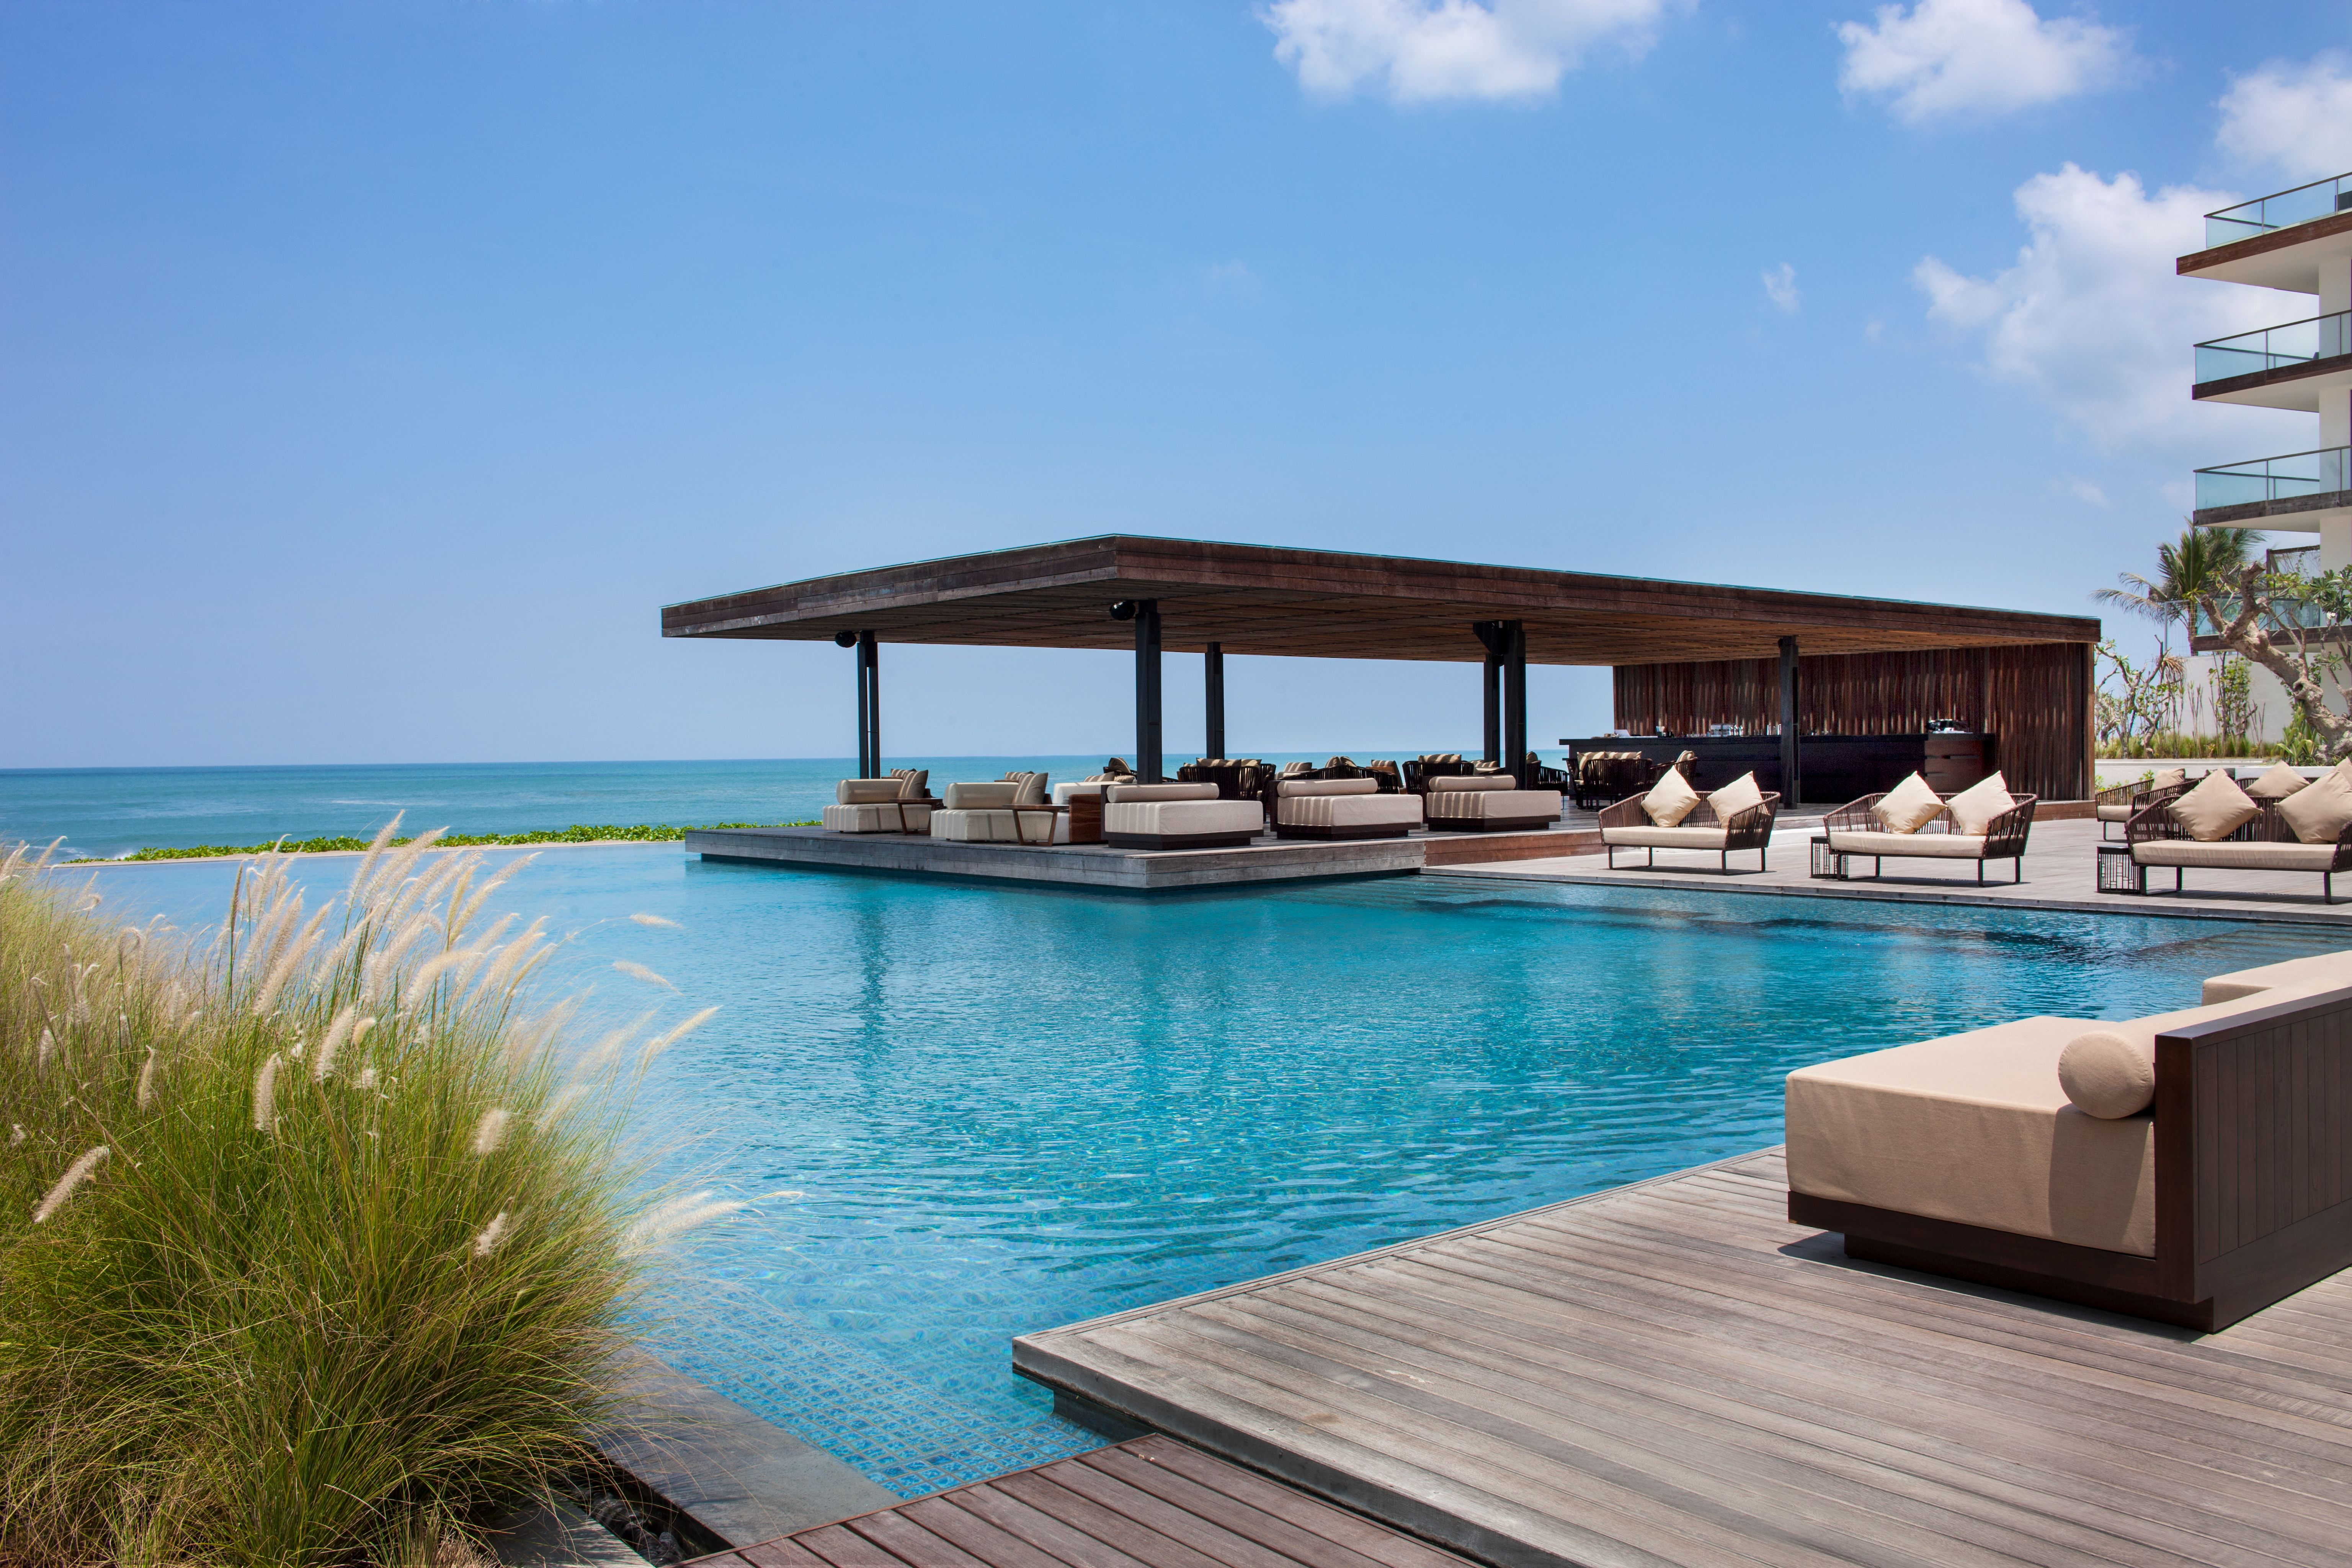 Ideally Located Along A Stretch Of Pristine Beach Alila Seminyak Bali Is A Famed Seminyak Beach Resort Featuring Plush Suites And Modern Amenities